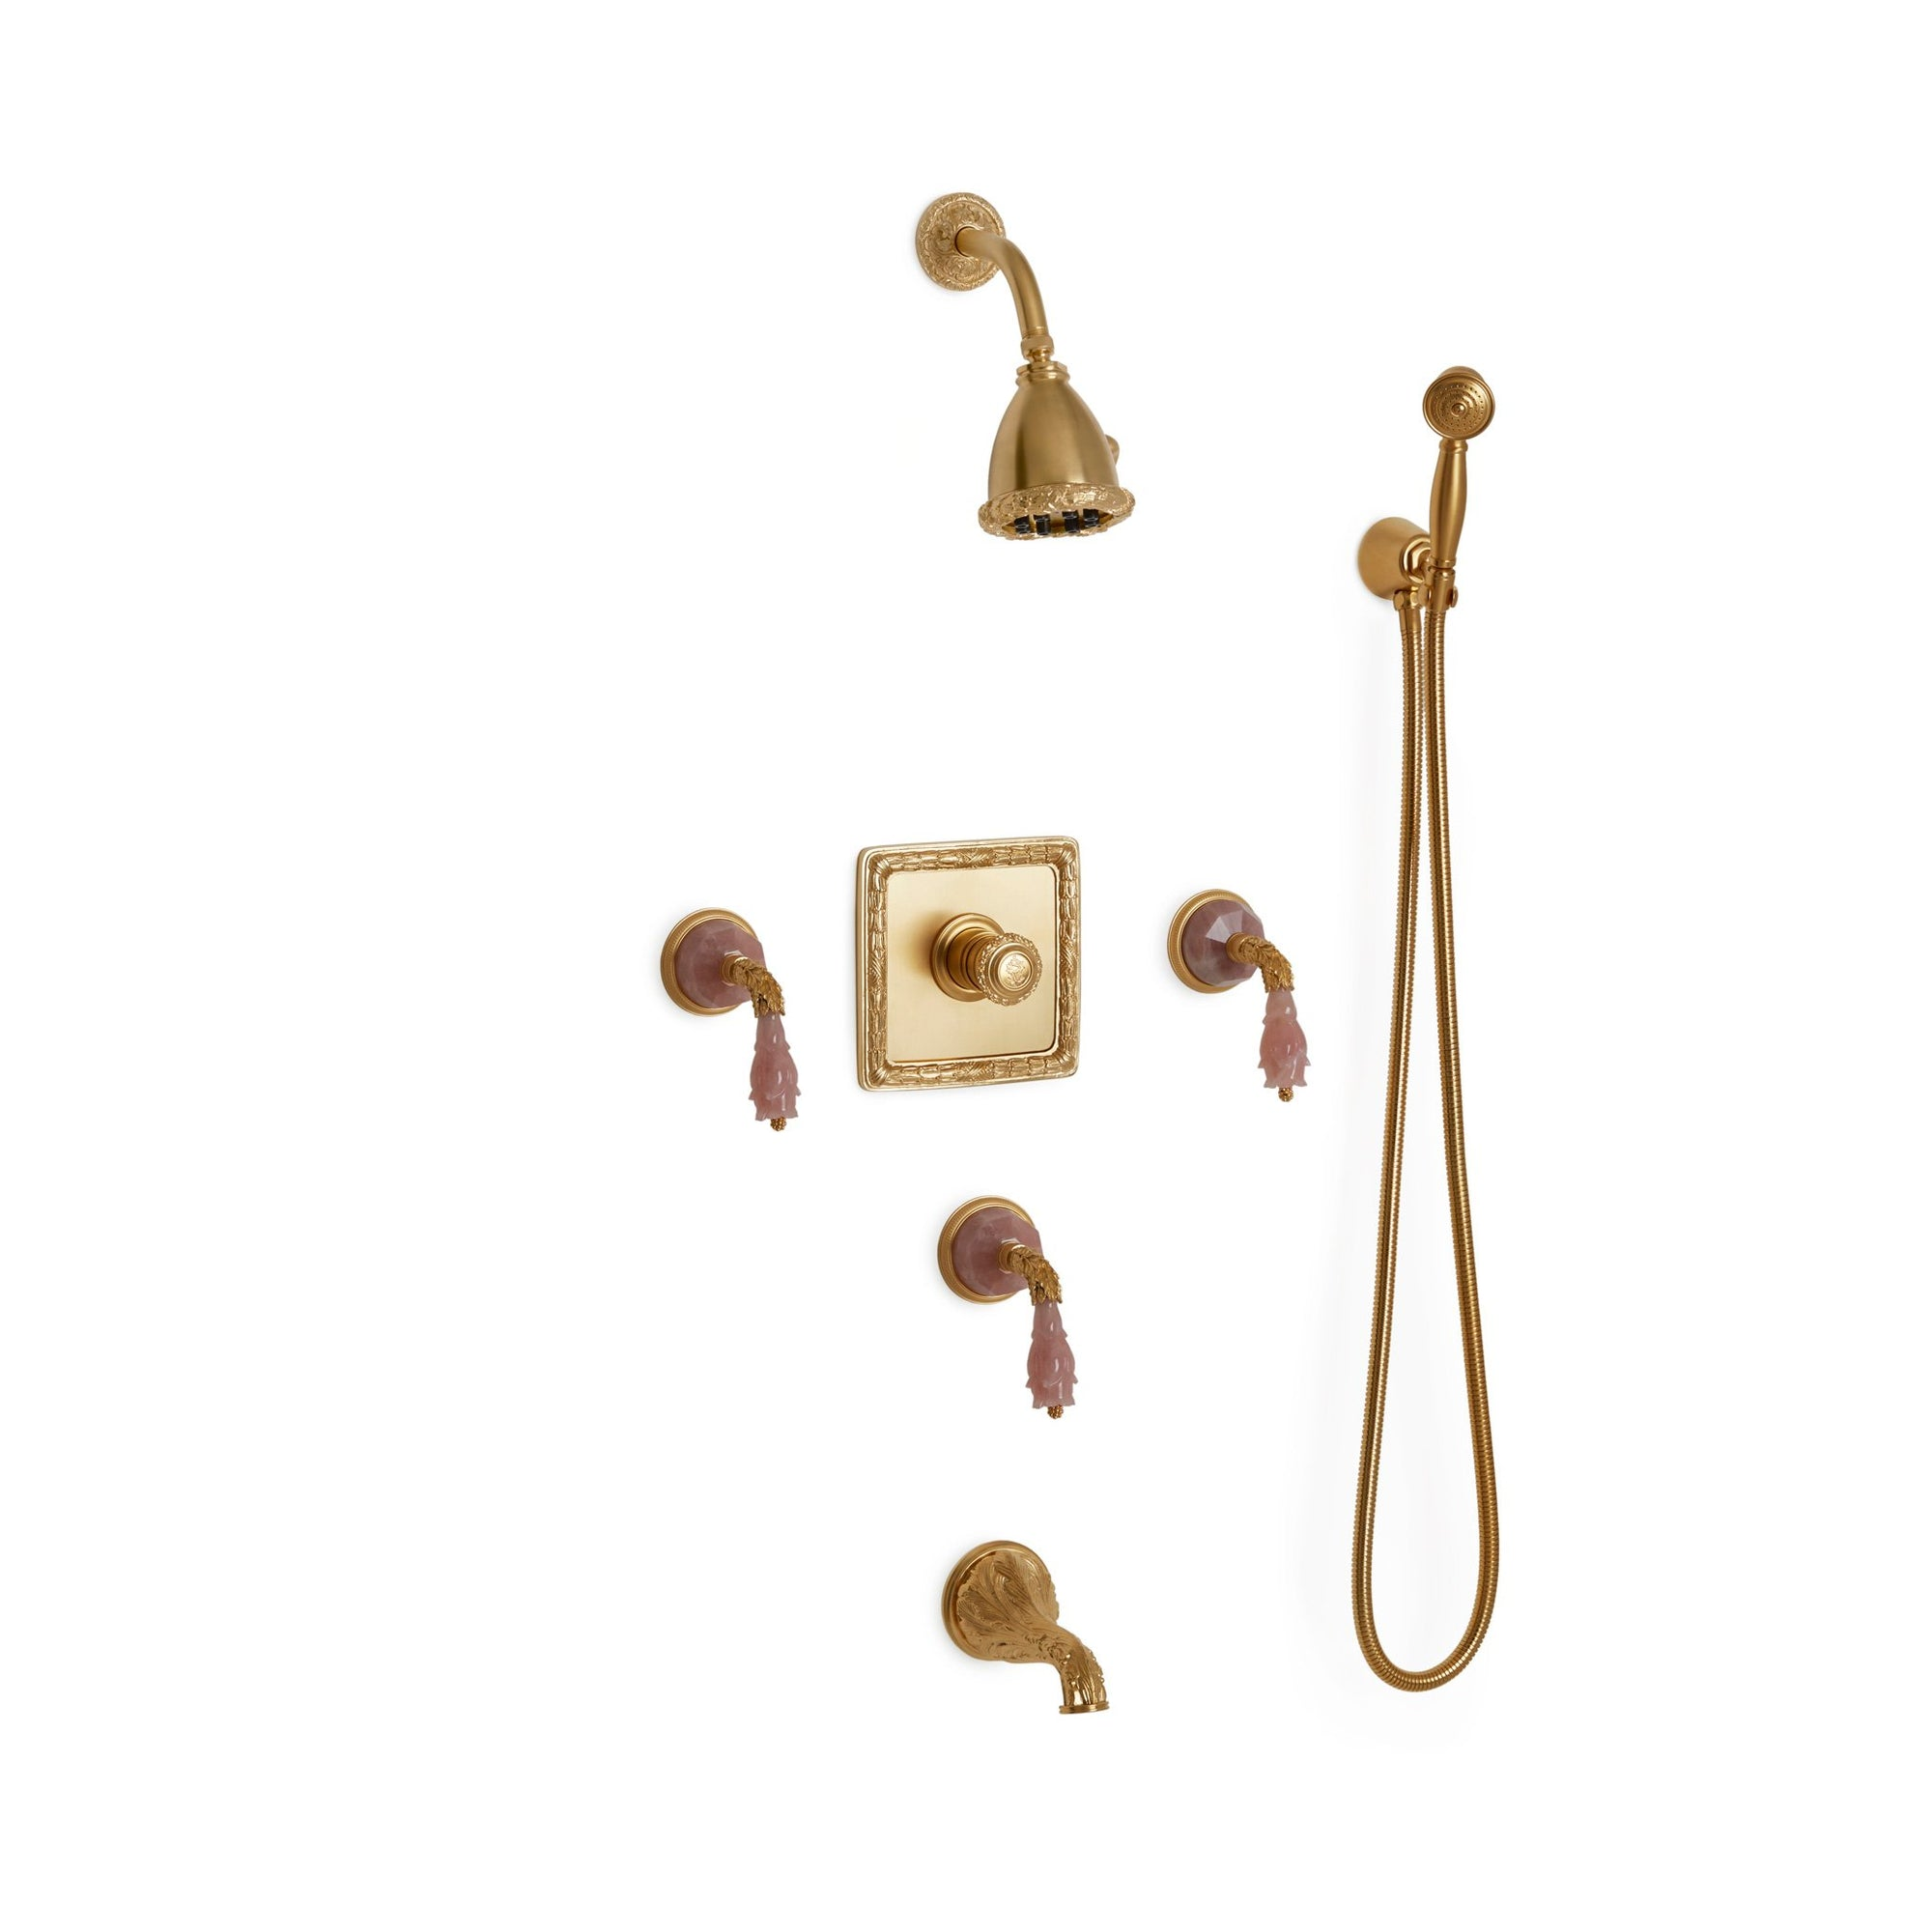 Sherle Wagner International Semiprecious Leaves High Flow Thermostatic Shower and Tub System in Gold Plate metal finish with Rose Quartz inserts